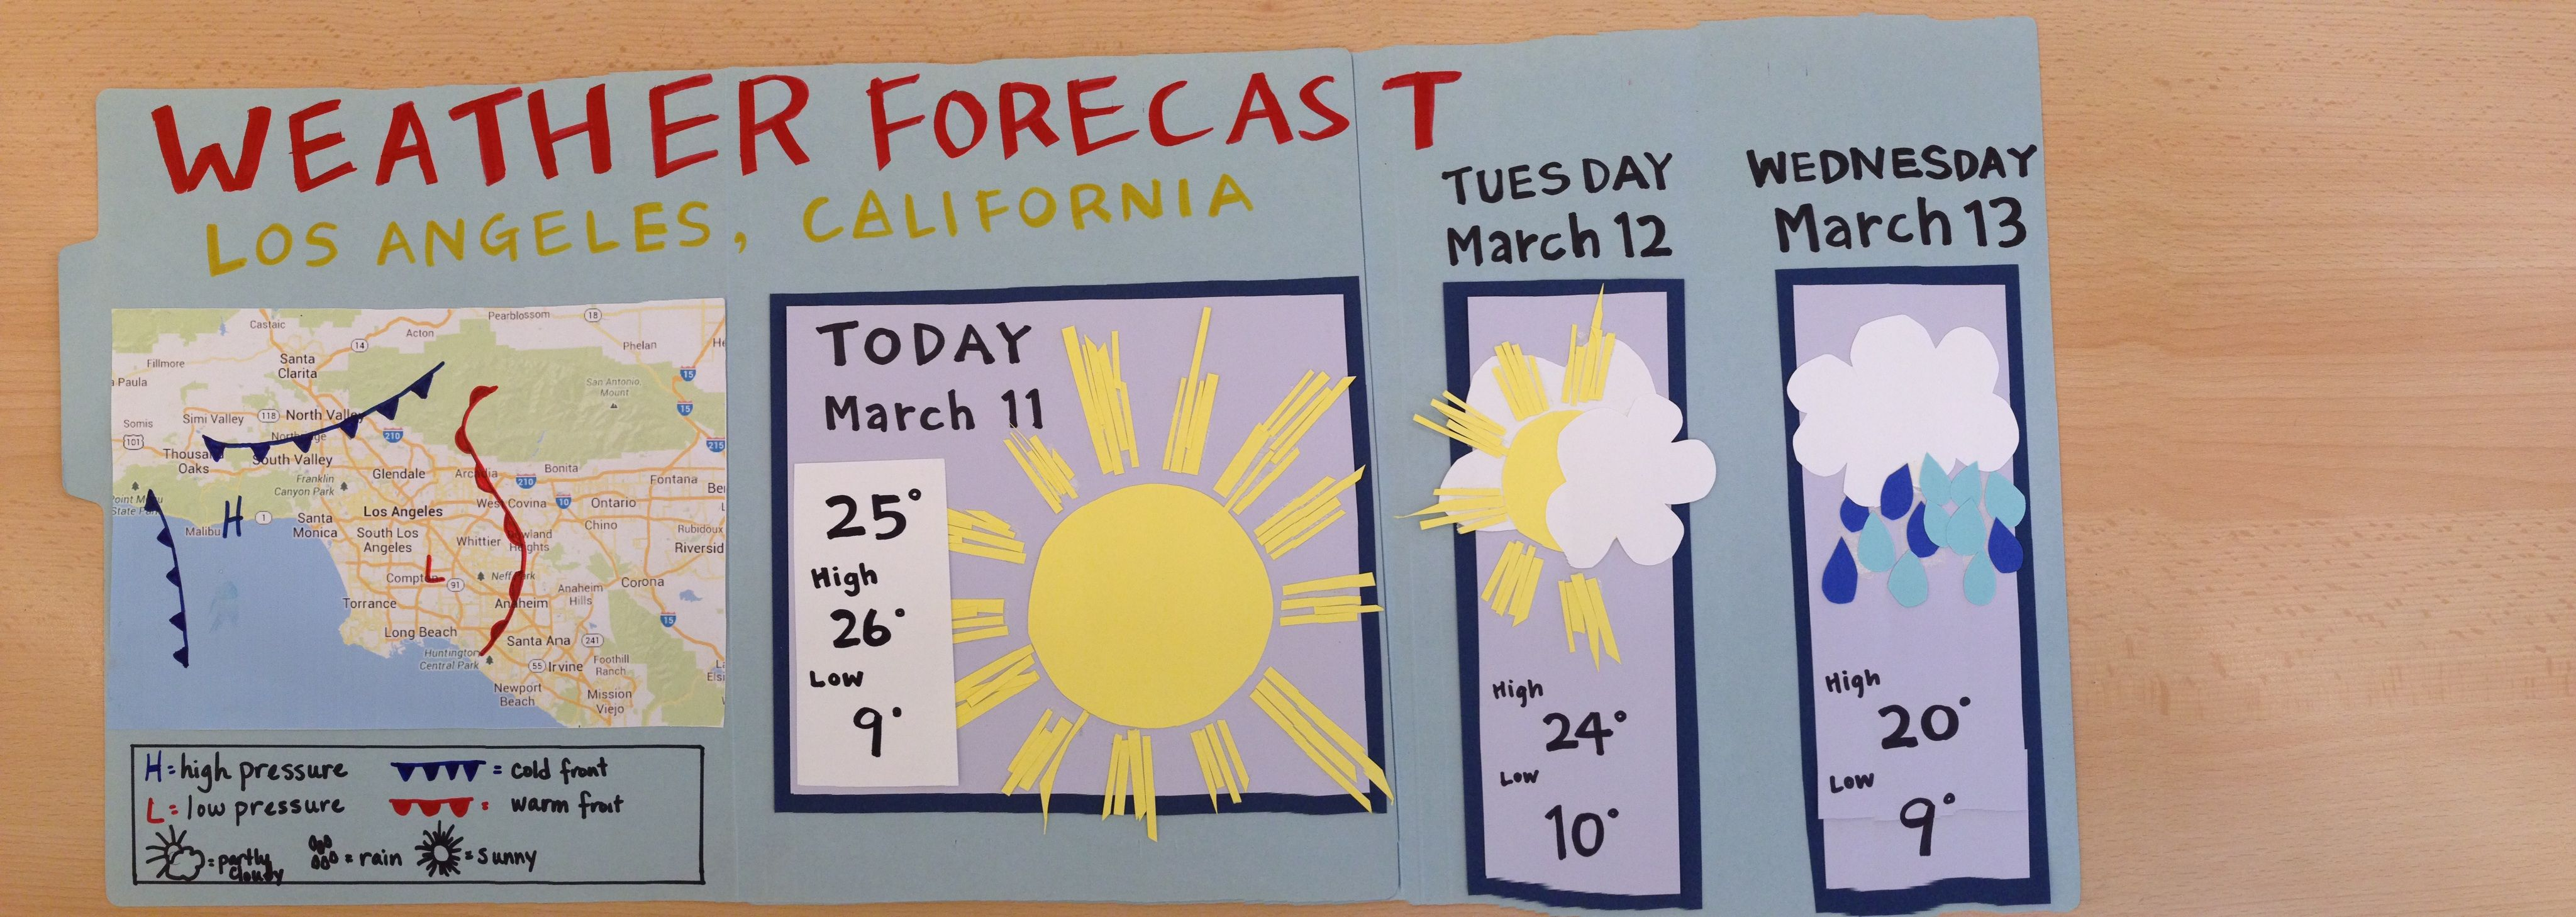 Weather Forecast Presentation Tri Fold Weather Board For Meteorologist Example For Students